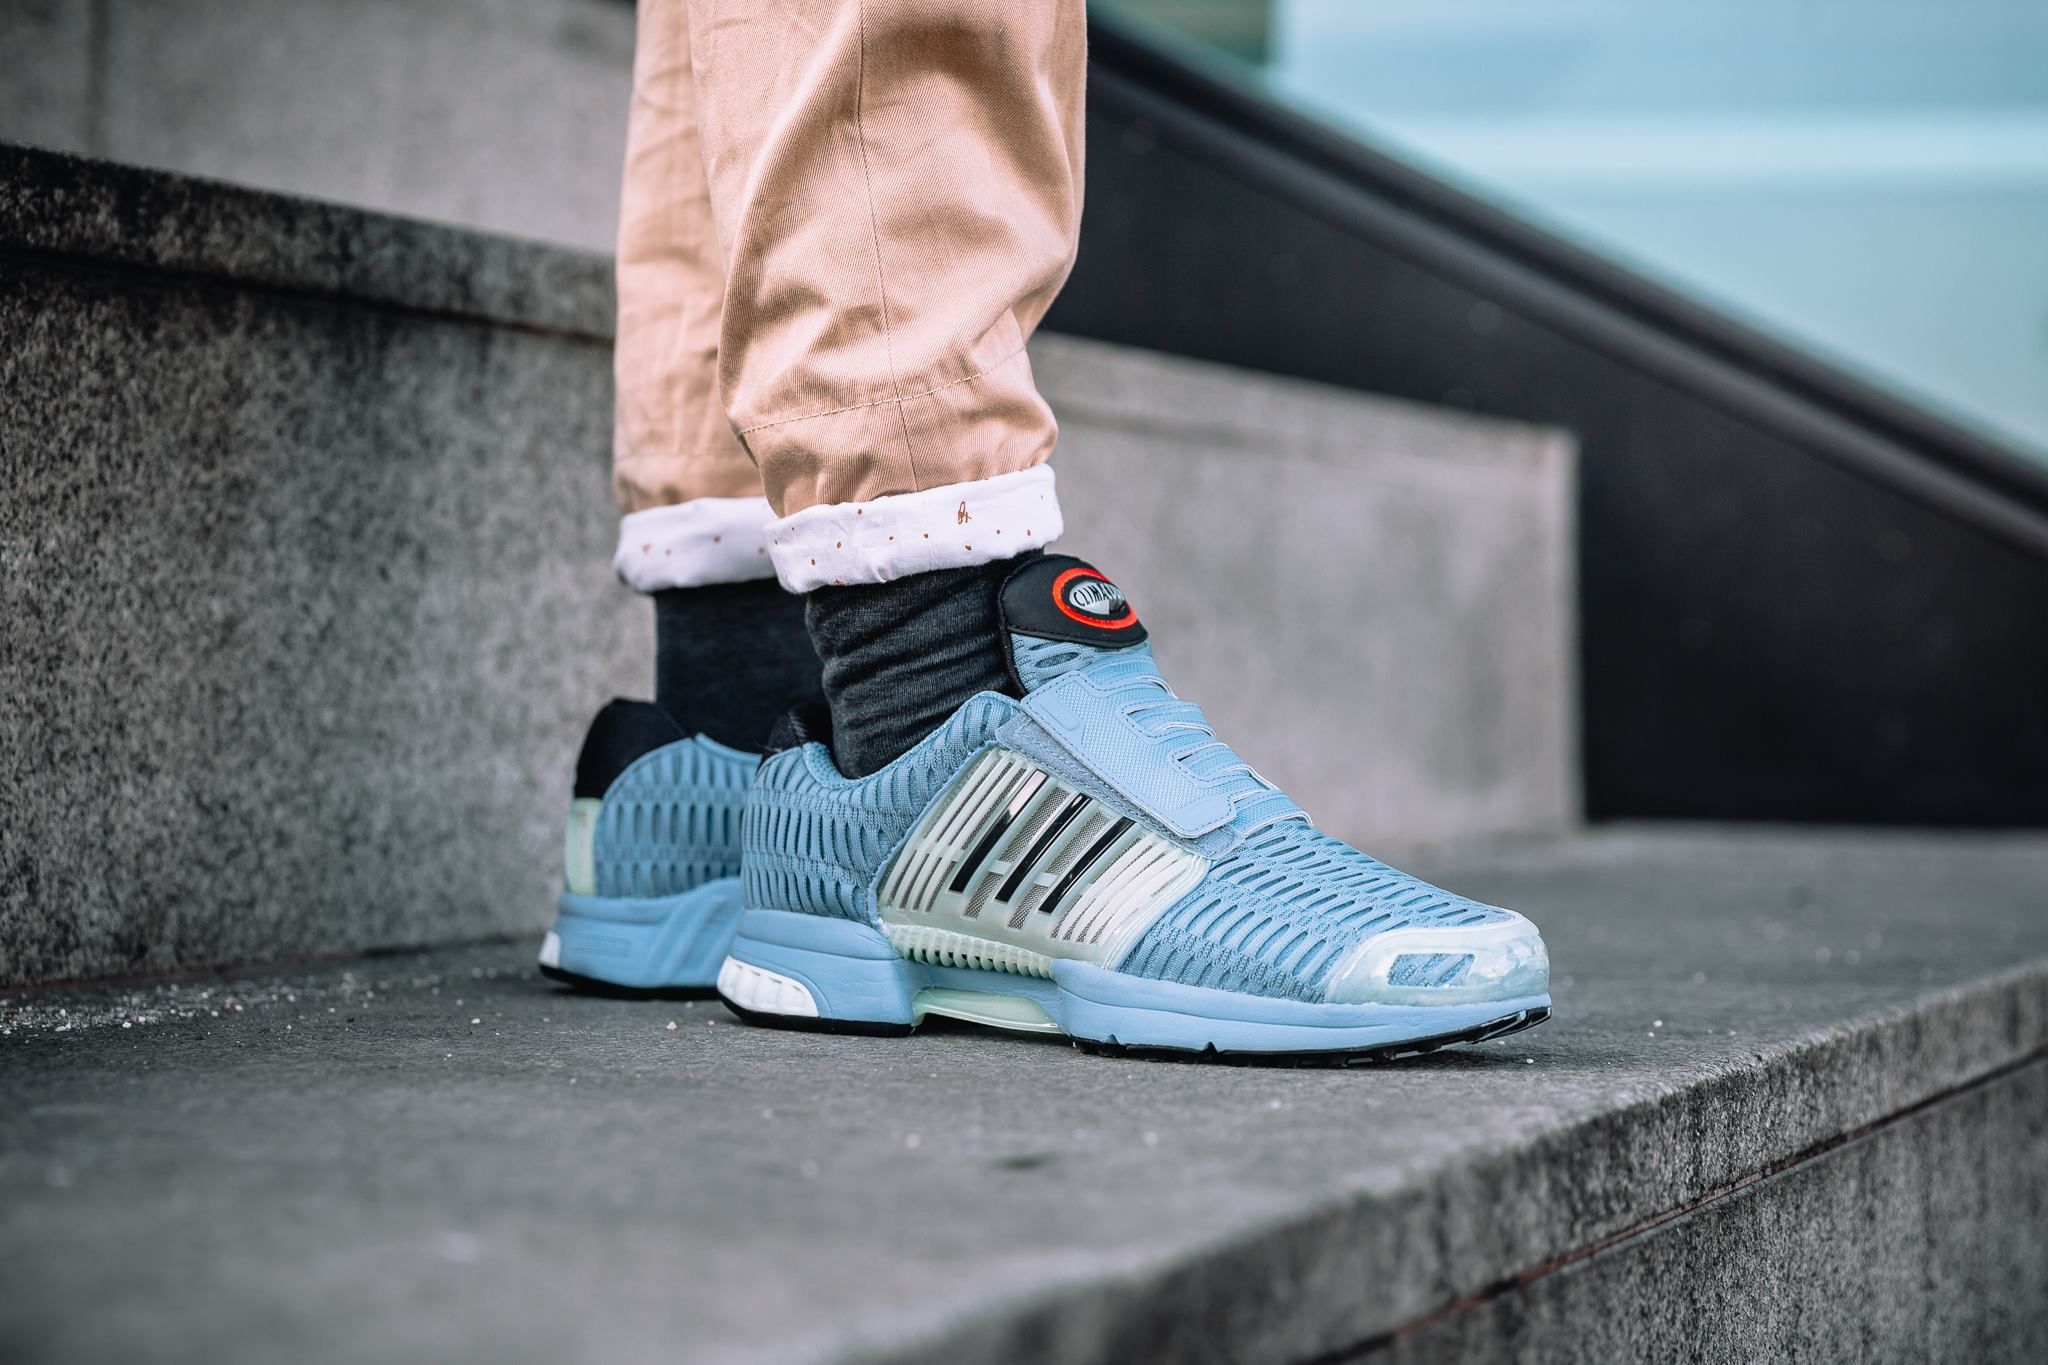 adidas ClimaCool 1 CMF 'Tactile Blue' (via…